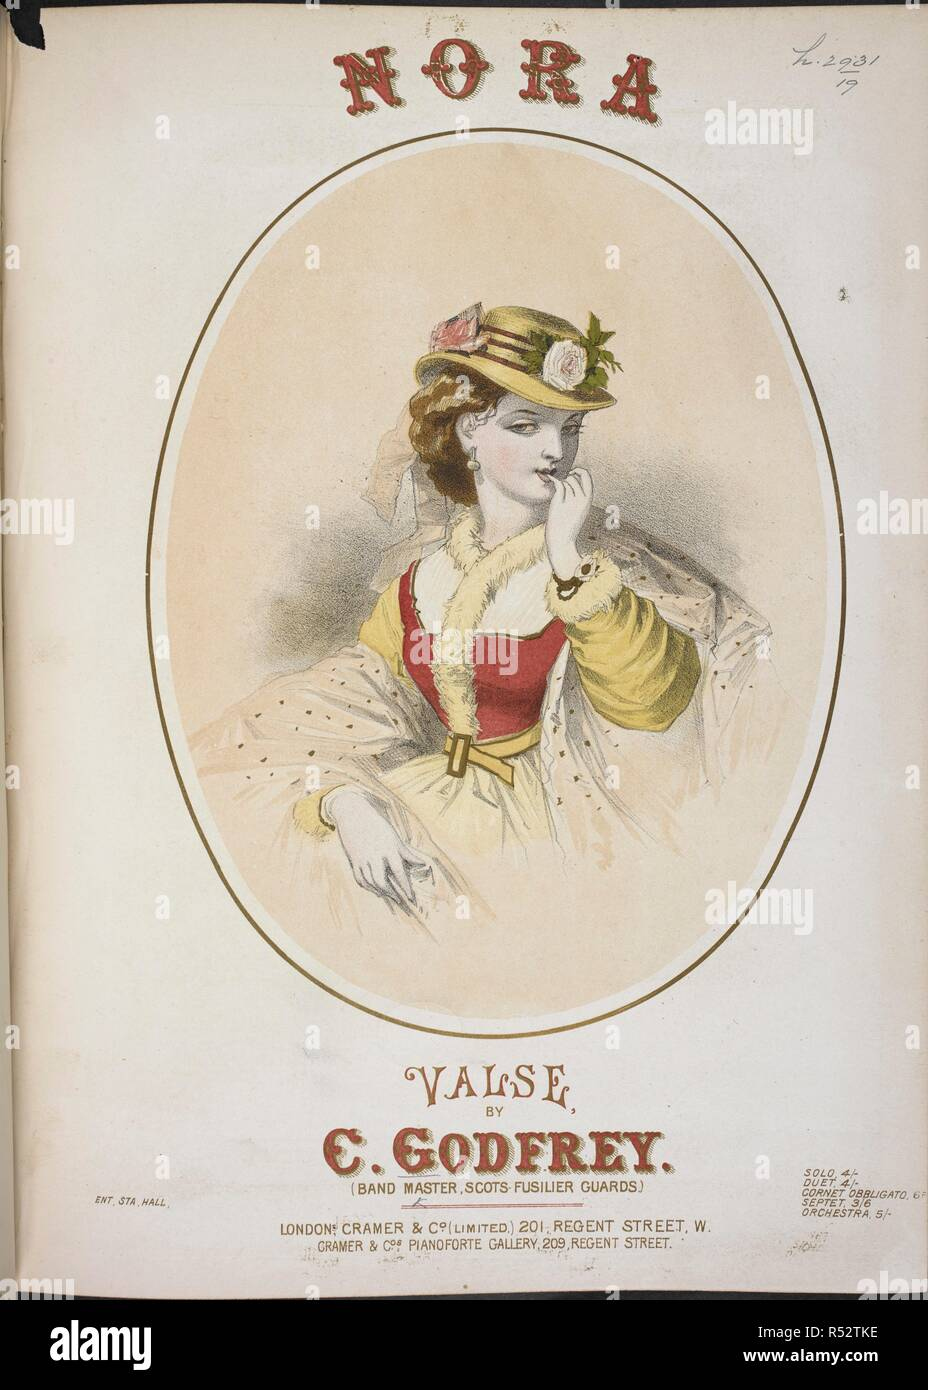 Music cover with the portrait of a young woman. Nora valse. [P. F.]. London, [1866]. Source: h.2931.(19). Author: GODFREY, CHARLES. - Stock Image